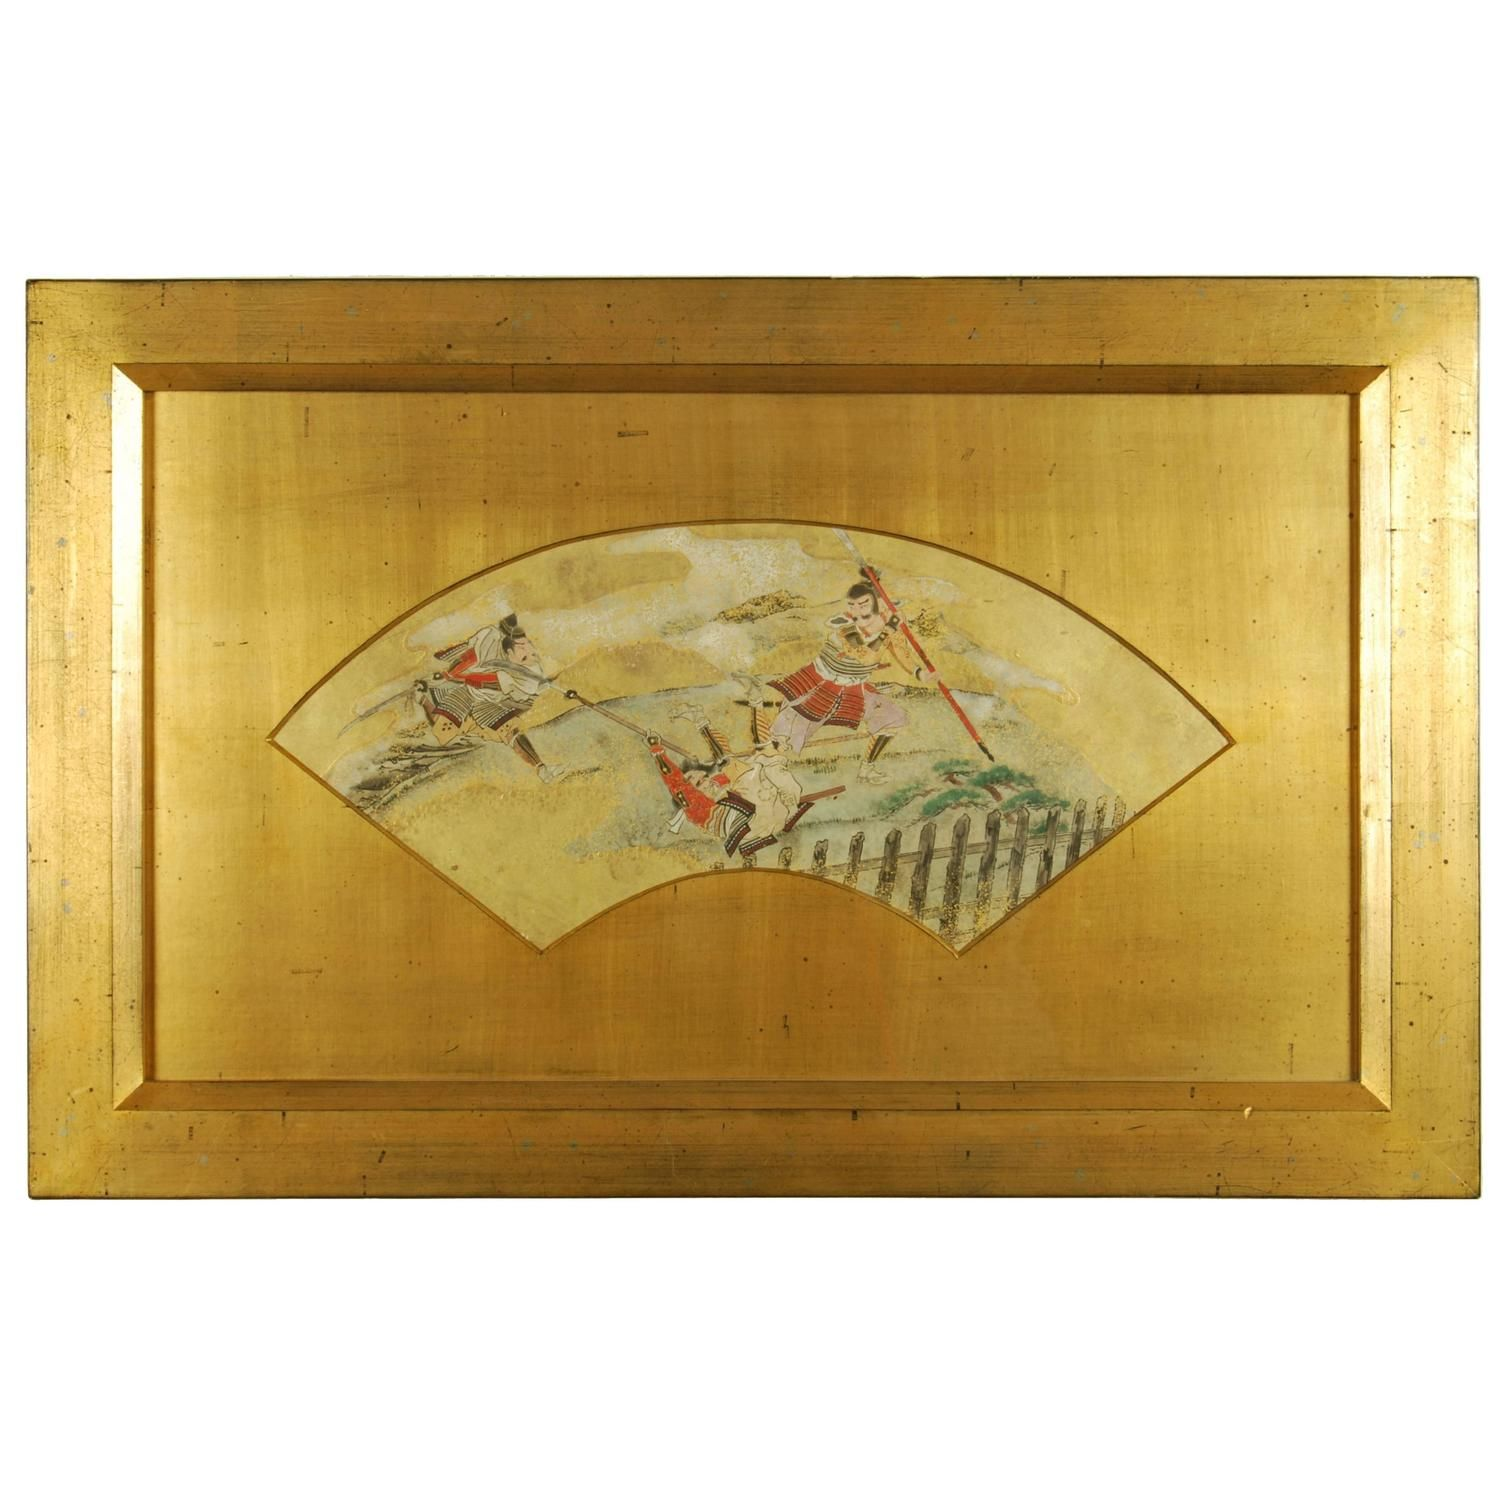 Antique Japanese Fan Painting with Scenes of a Samurai Battle